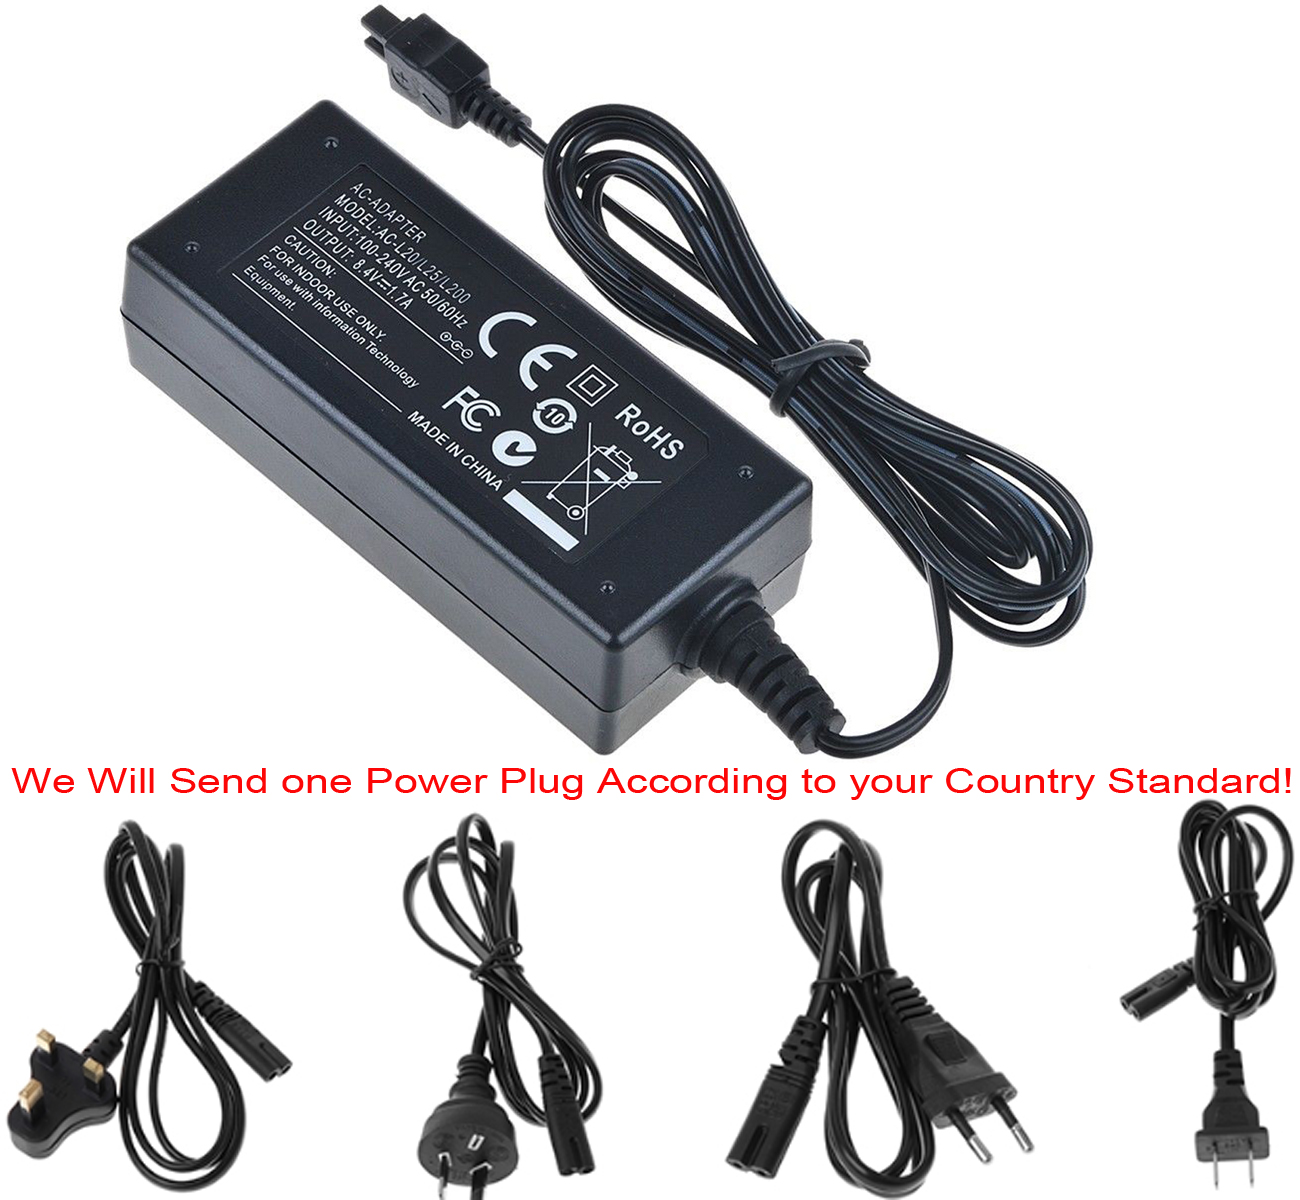 HZQDLN AC Power Adapter Charger and US Cable for Sony Handycam DCR-SR88 Digital Camcorder